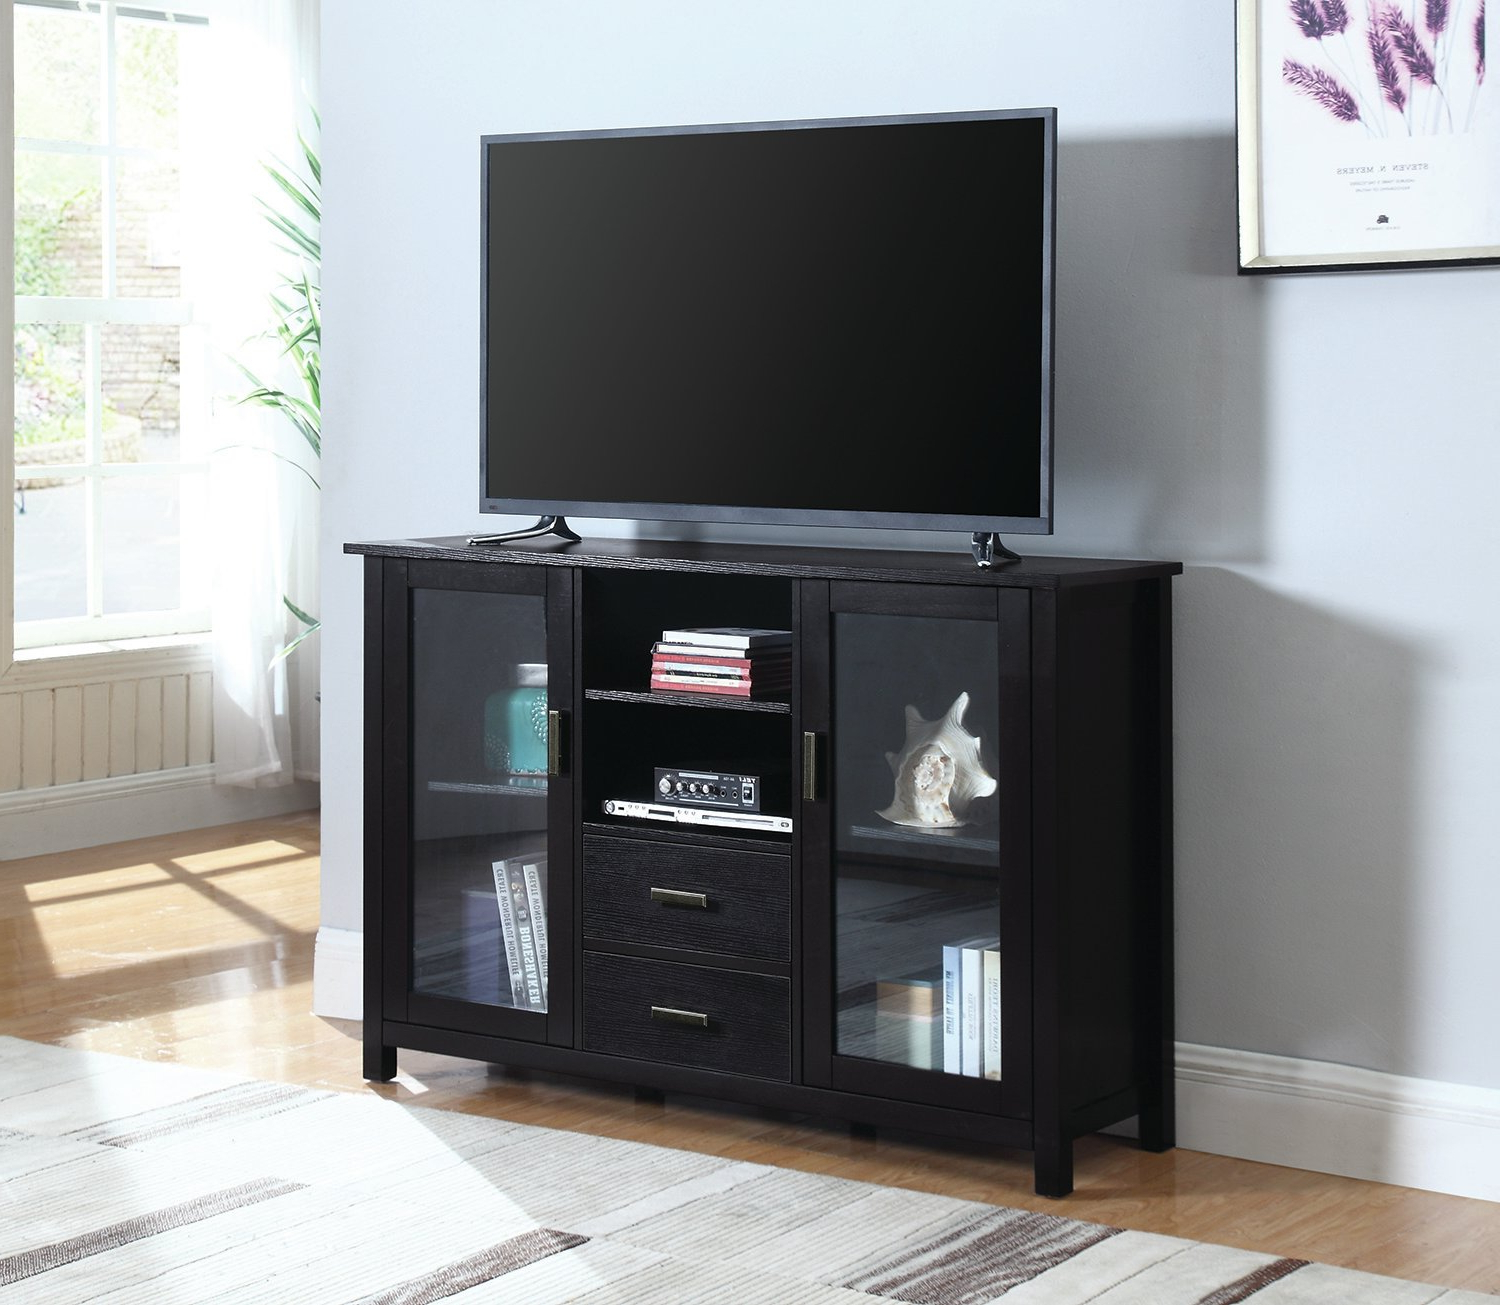 Current 40 49 Inches Tall Tv Stands You'll Love (View 11 of 20)